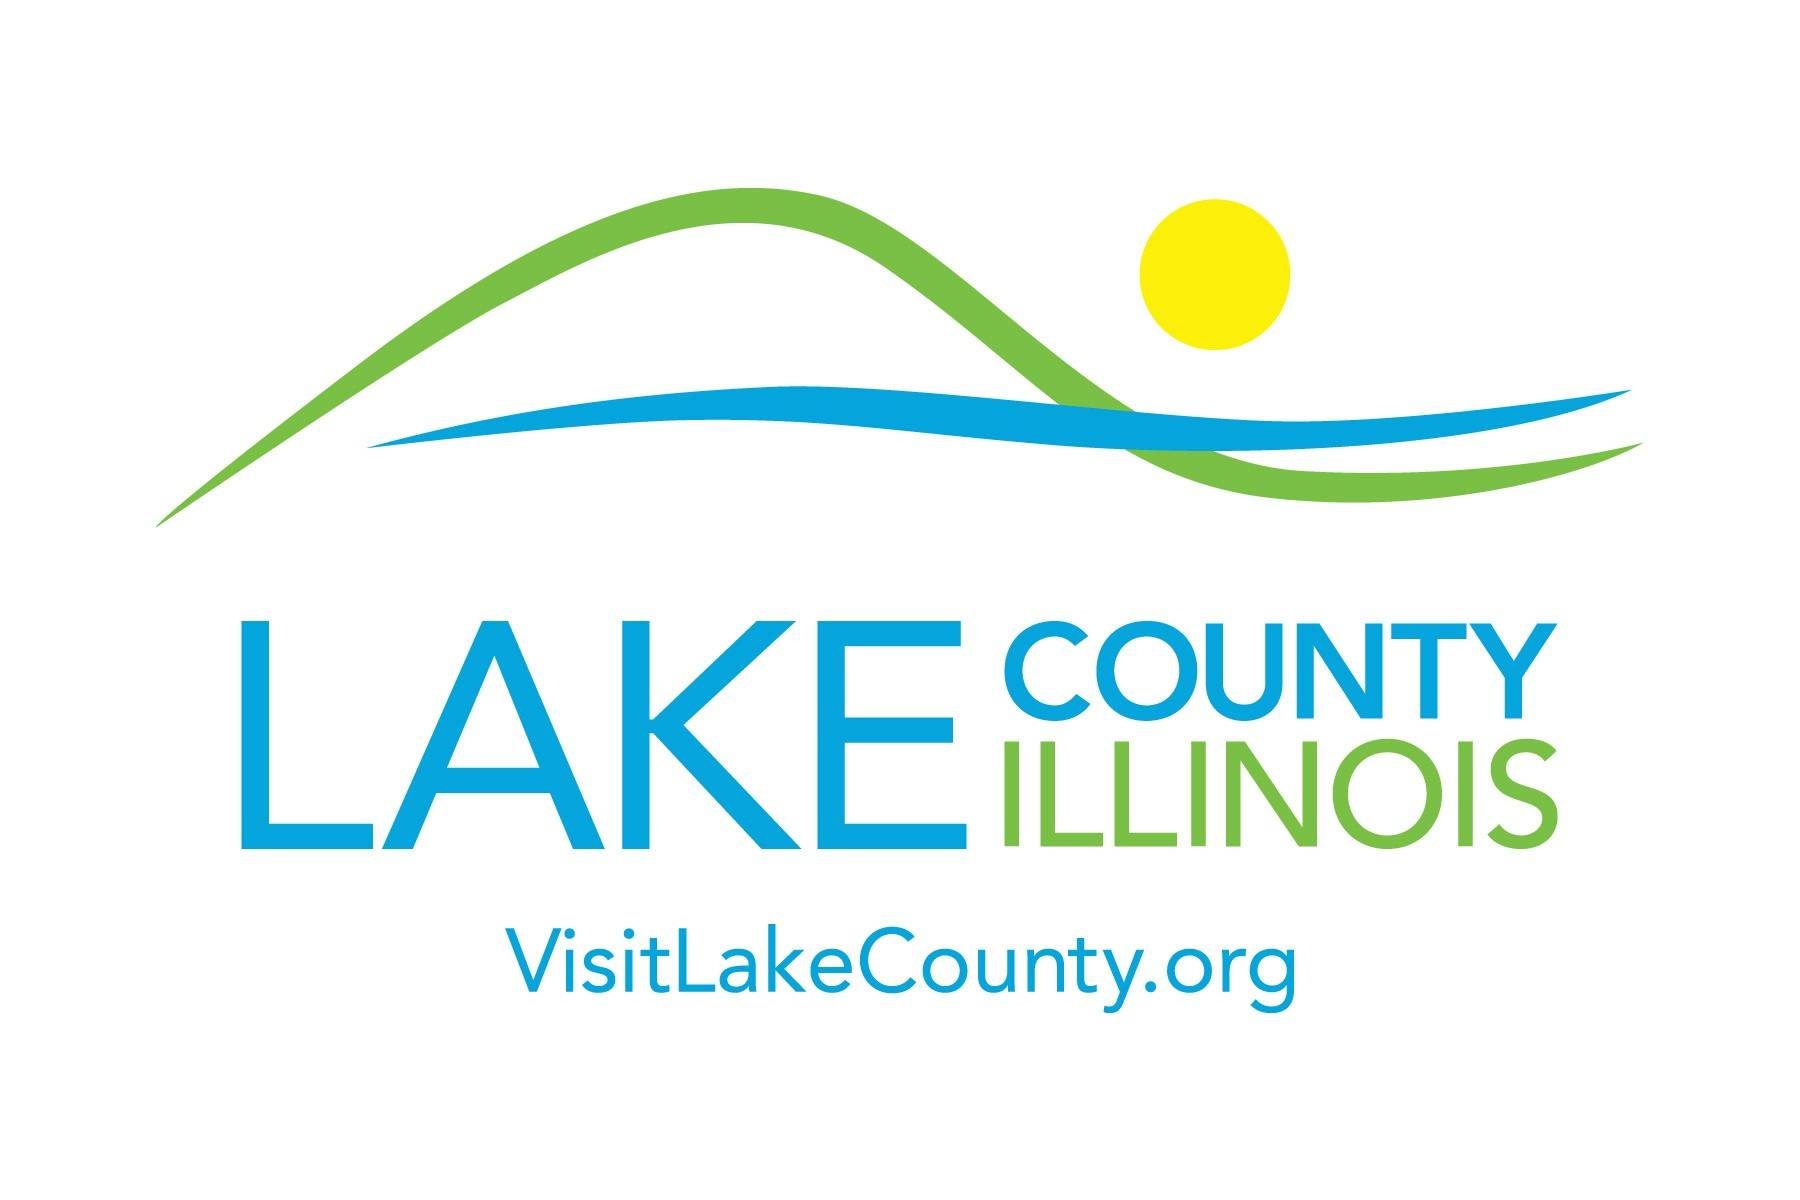 visit lake county logo